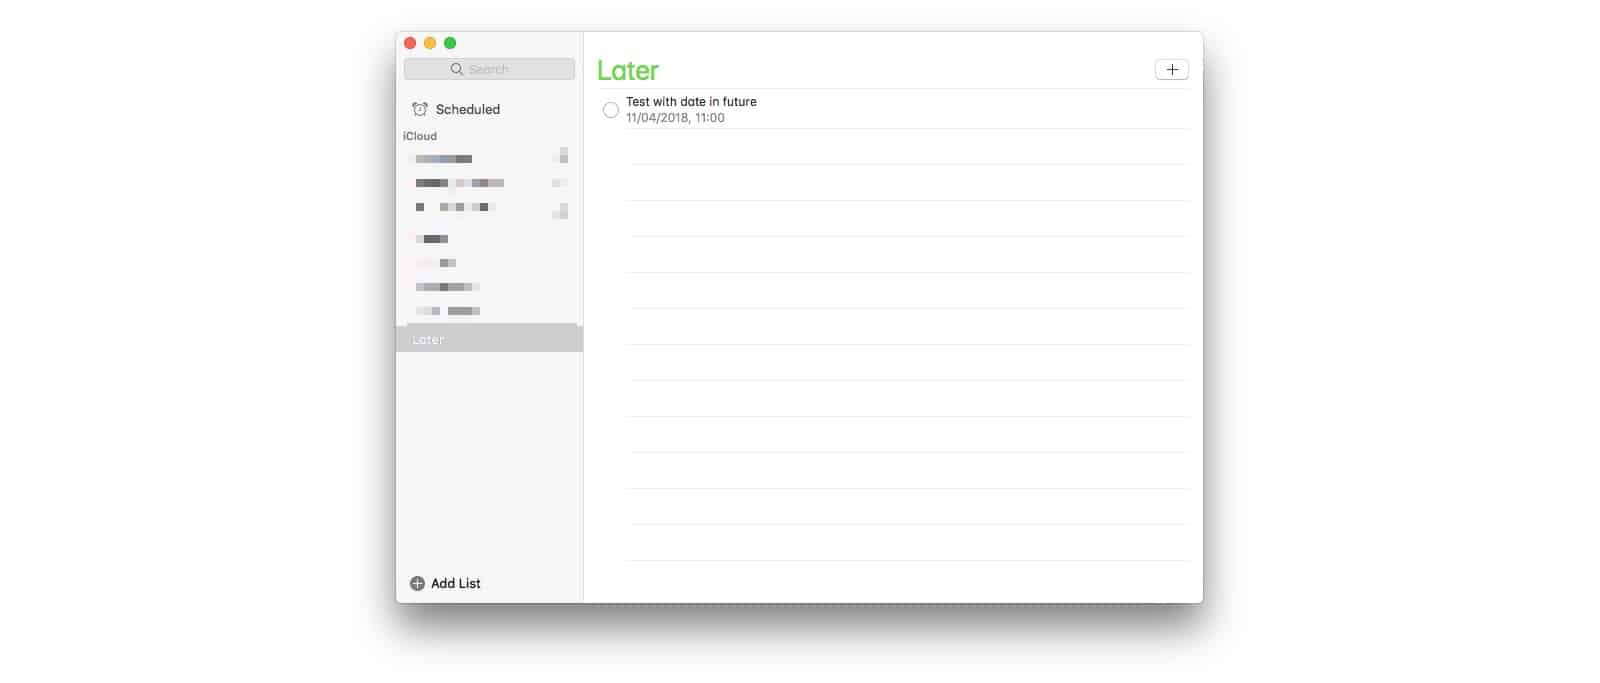 Using a do-it-later list in Reminders is easy.